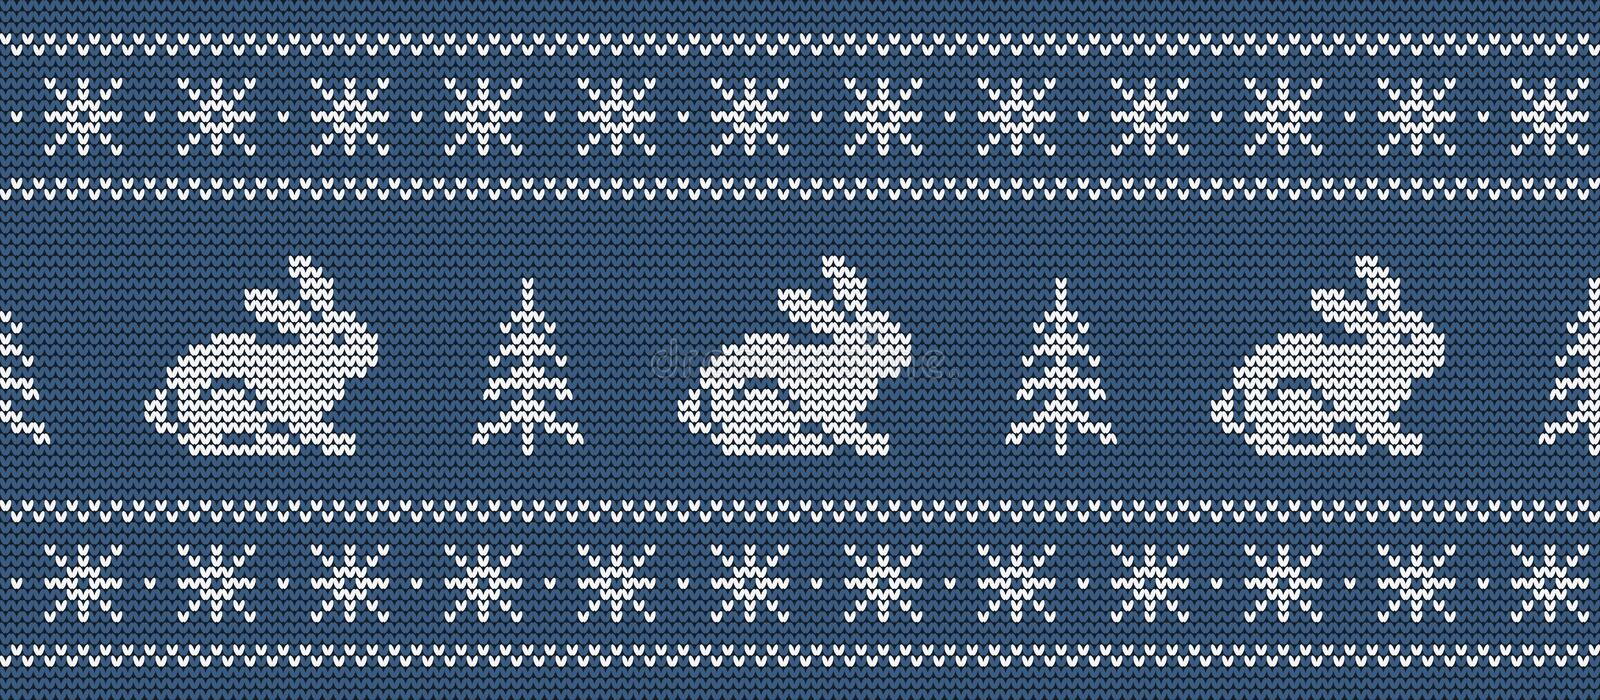 Christmas background. Knitted pattern with hares and christmas trees on a blue background vector illustration